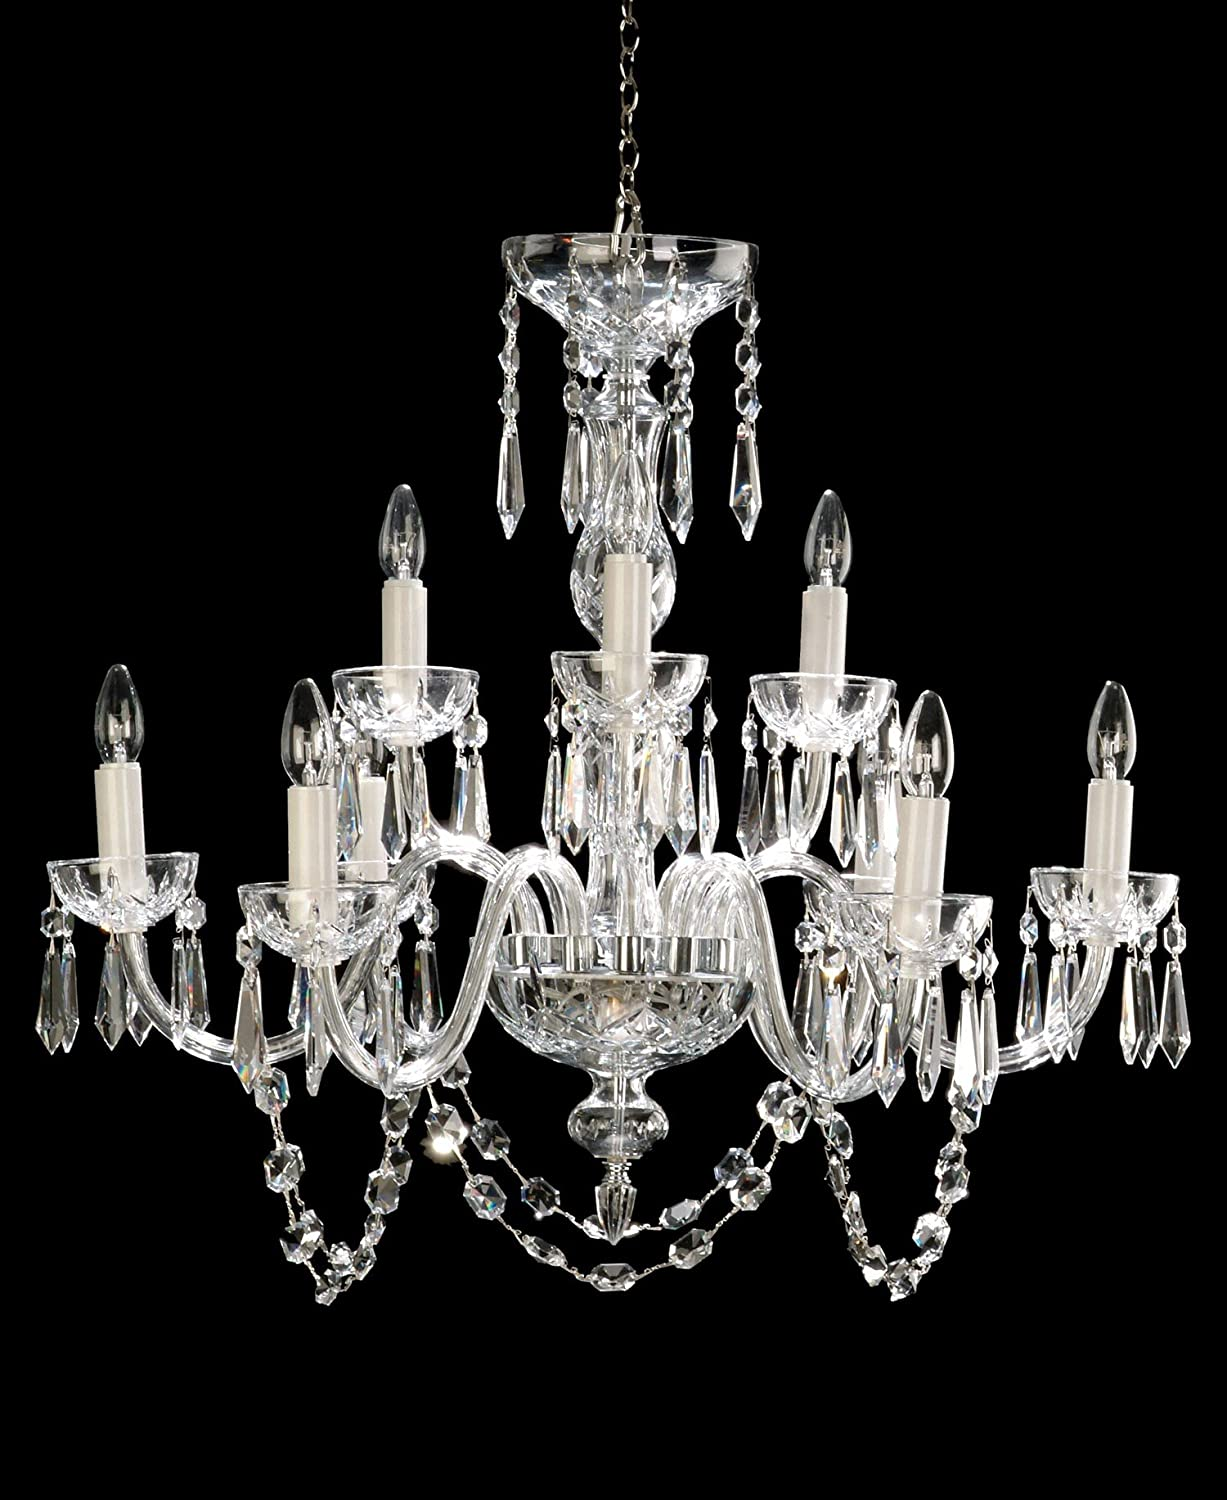 Waterford crystal lismore nine arm chandelier amazon arubaitofo Image collections